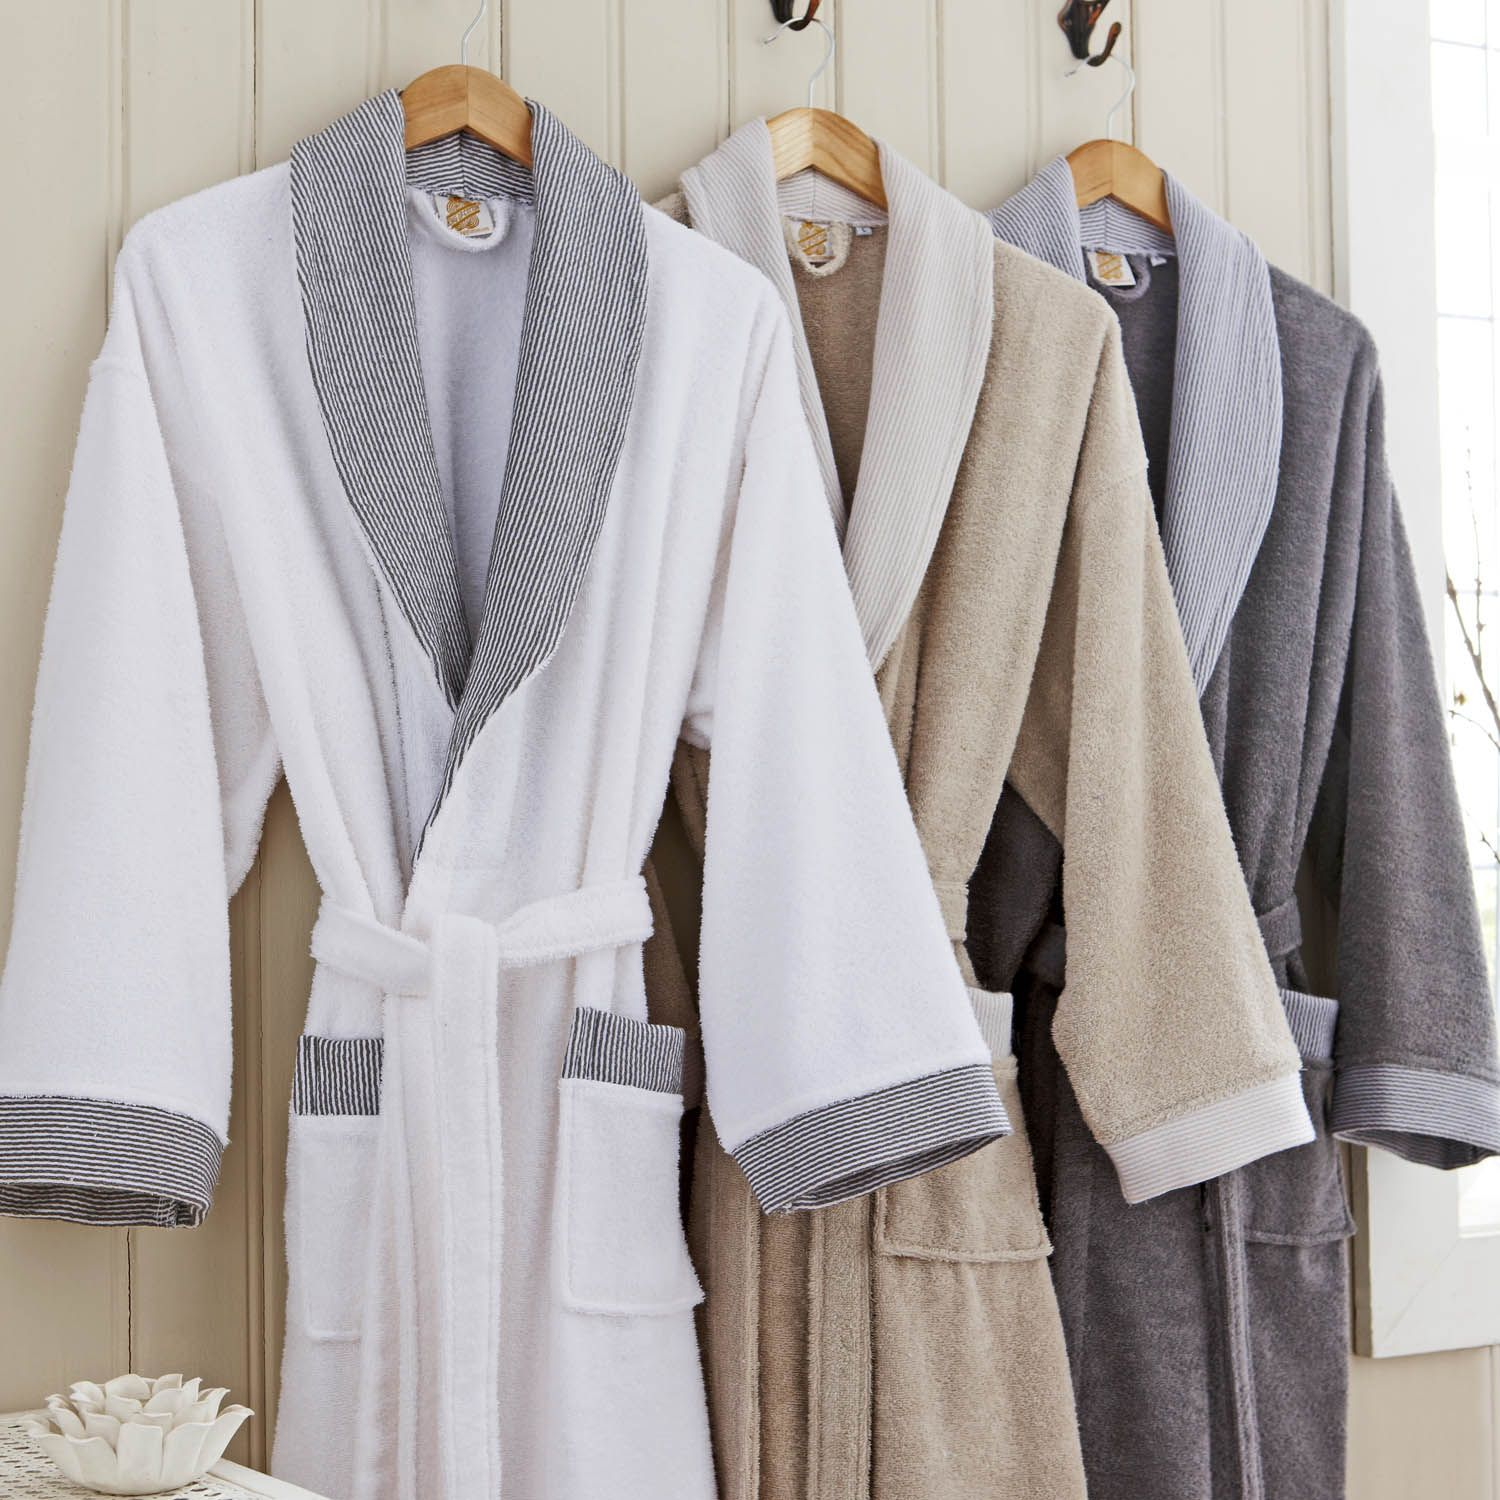 Waffled Dressing Gown Dressing Gown In A Soft Waffle Weave With - Bathroom robes